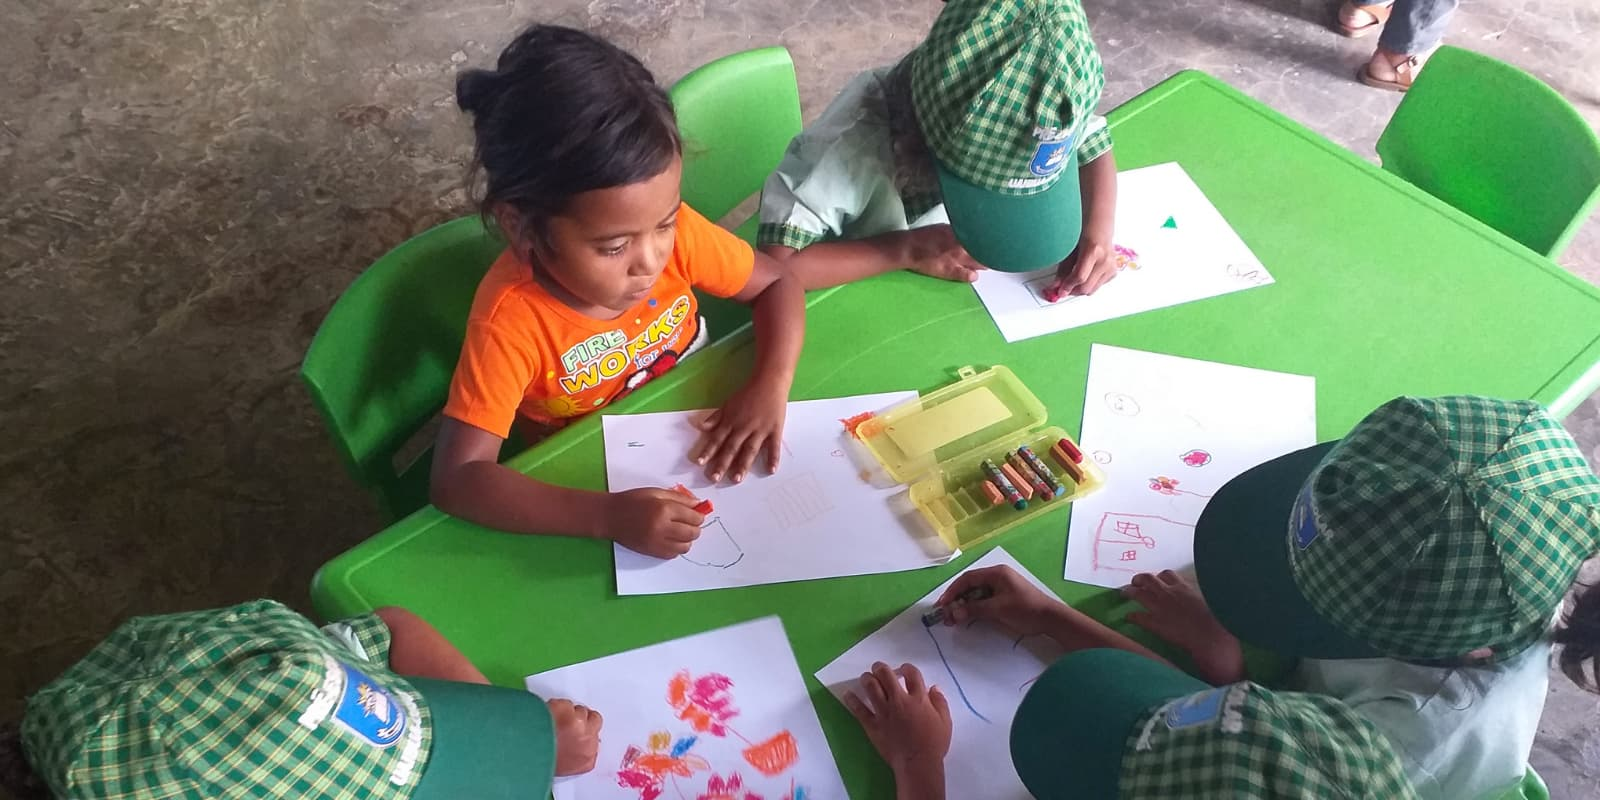 Timor-Leste's children need support to go to school and access clean water